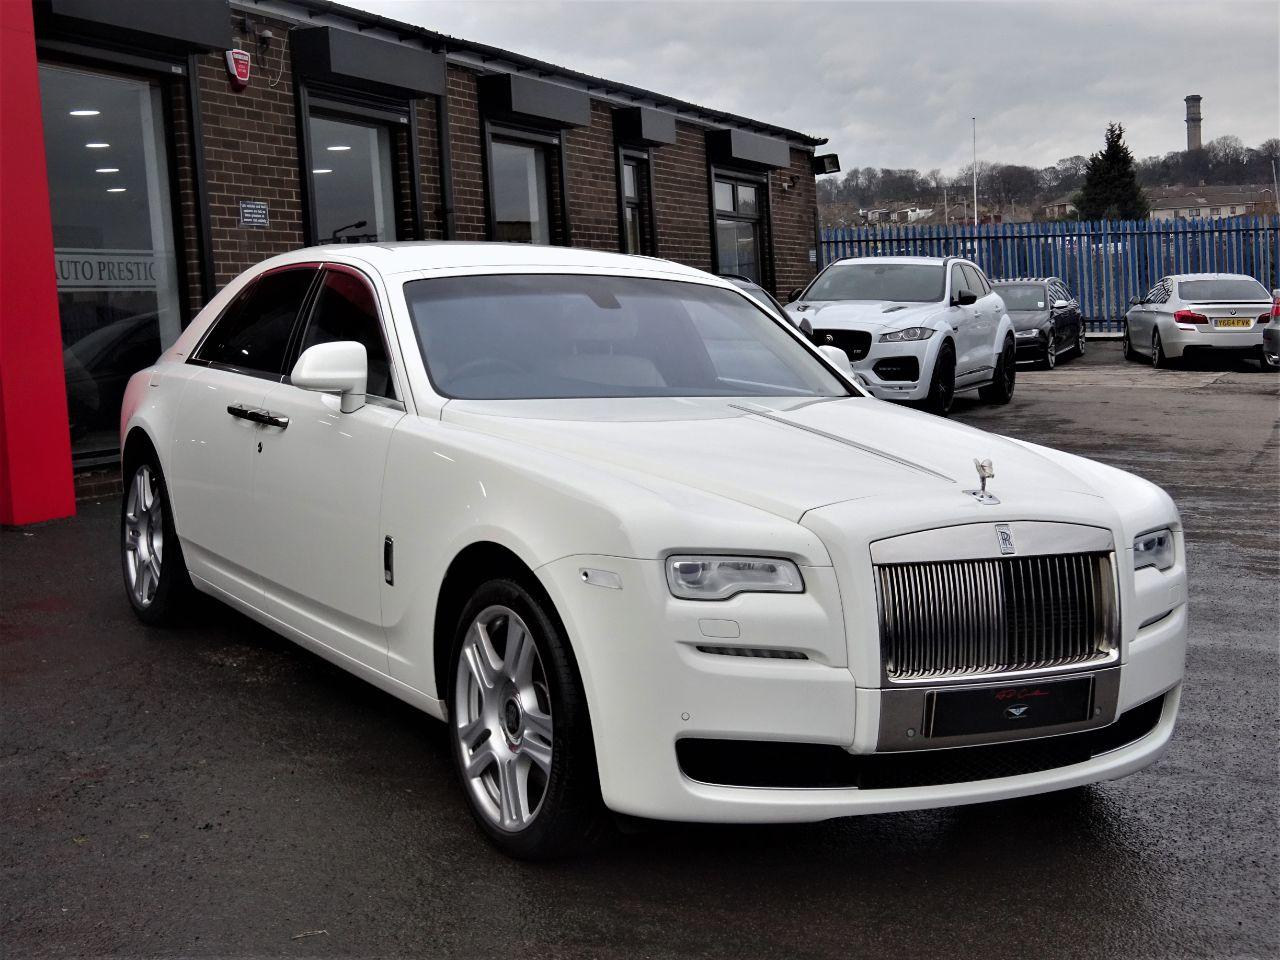 Rolls Royce Ghost 6.6 II 4dr Auto 5 YEAR SERVICE PLAN 4 YEAR WARRANTY AS NEW Saloon Petrol White at Autoprestige Bradford